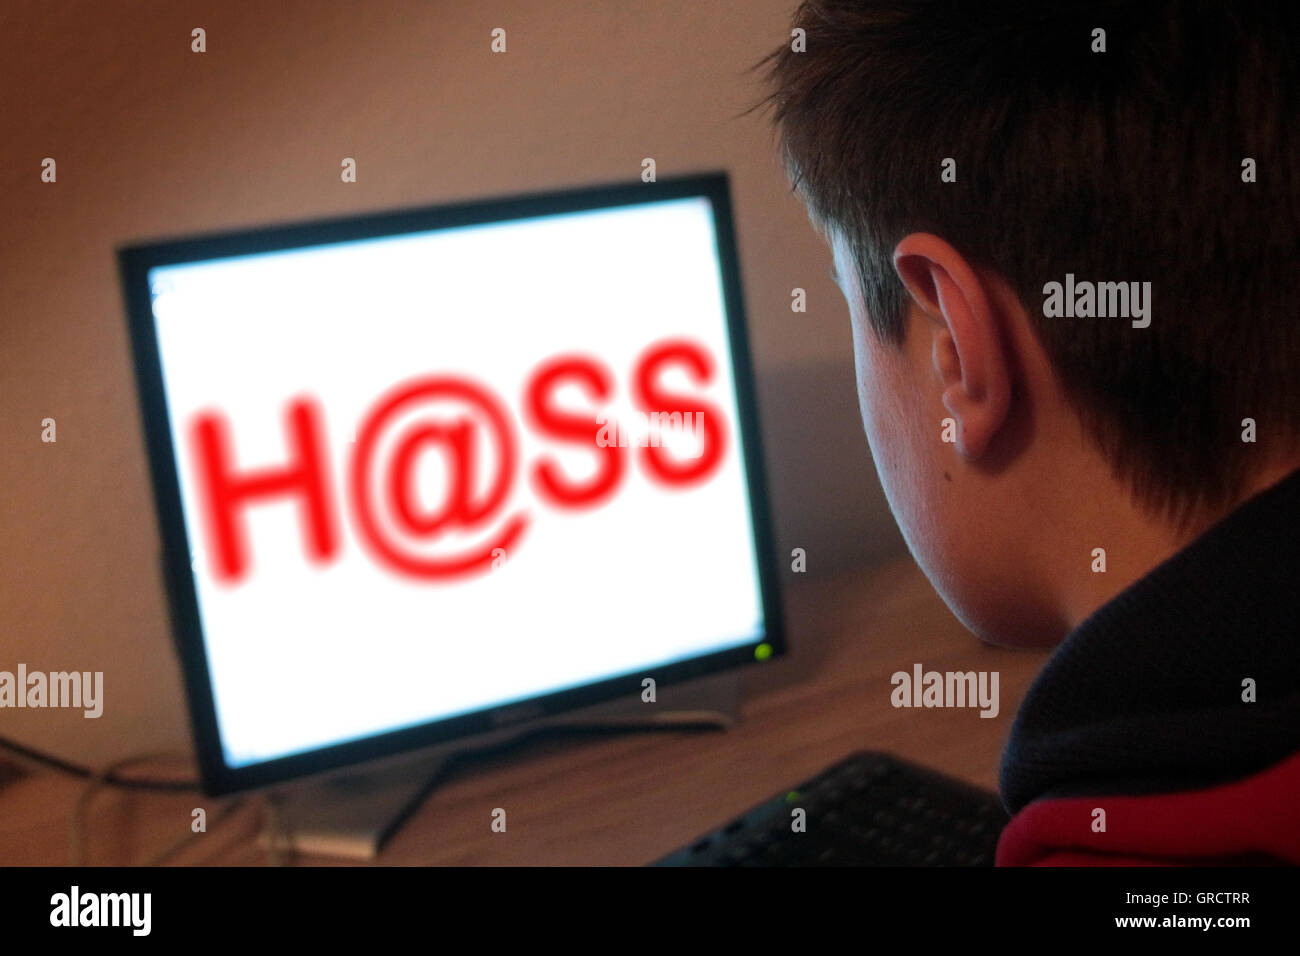 Word Hate With At Sign And Computer Screen - Stock Image